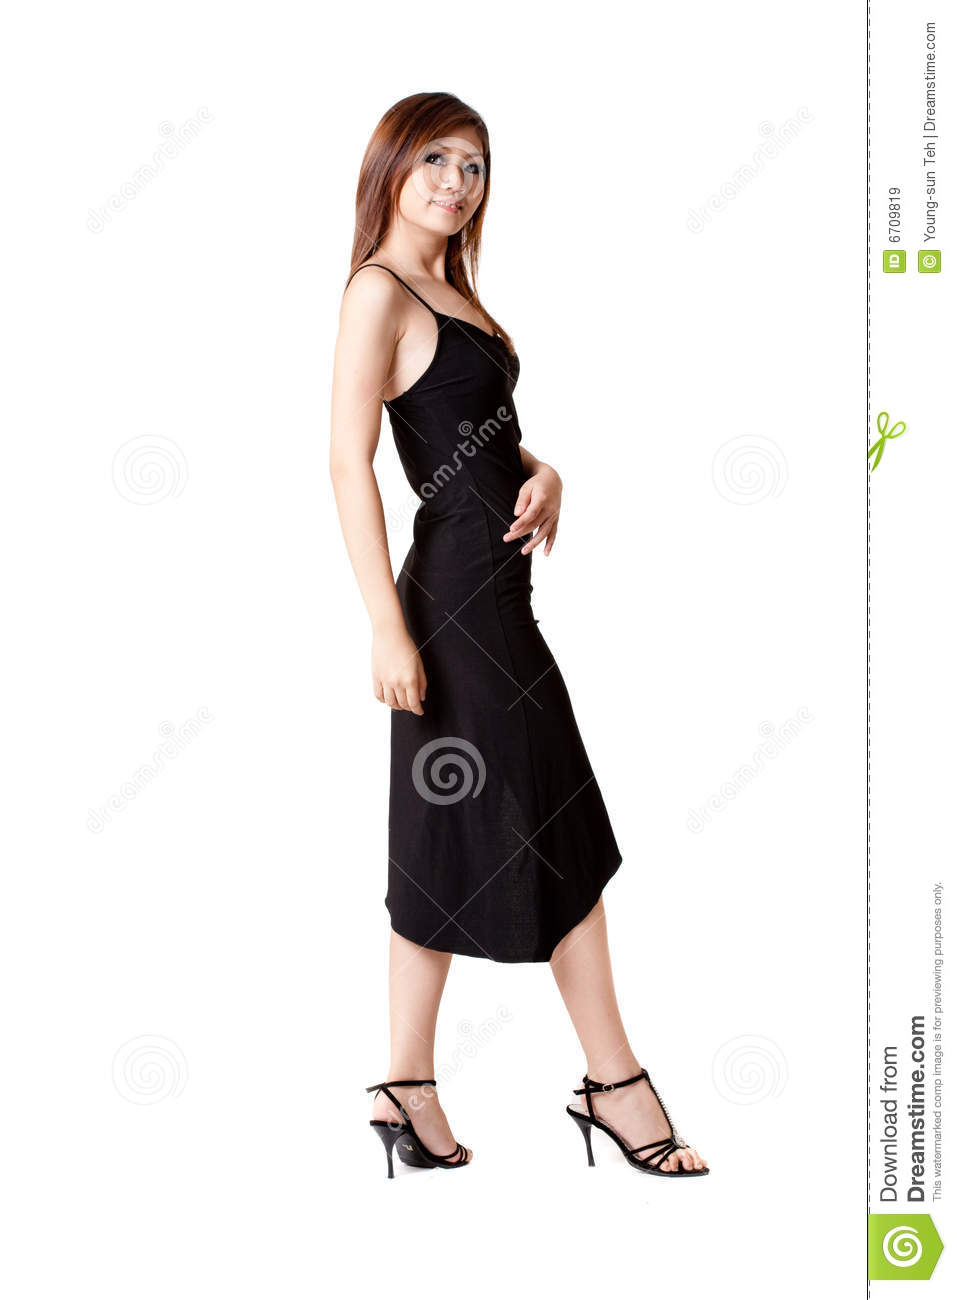 Woman in little black dress royalty free stock images image 6709819